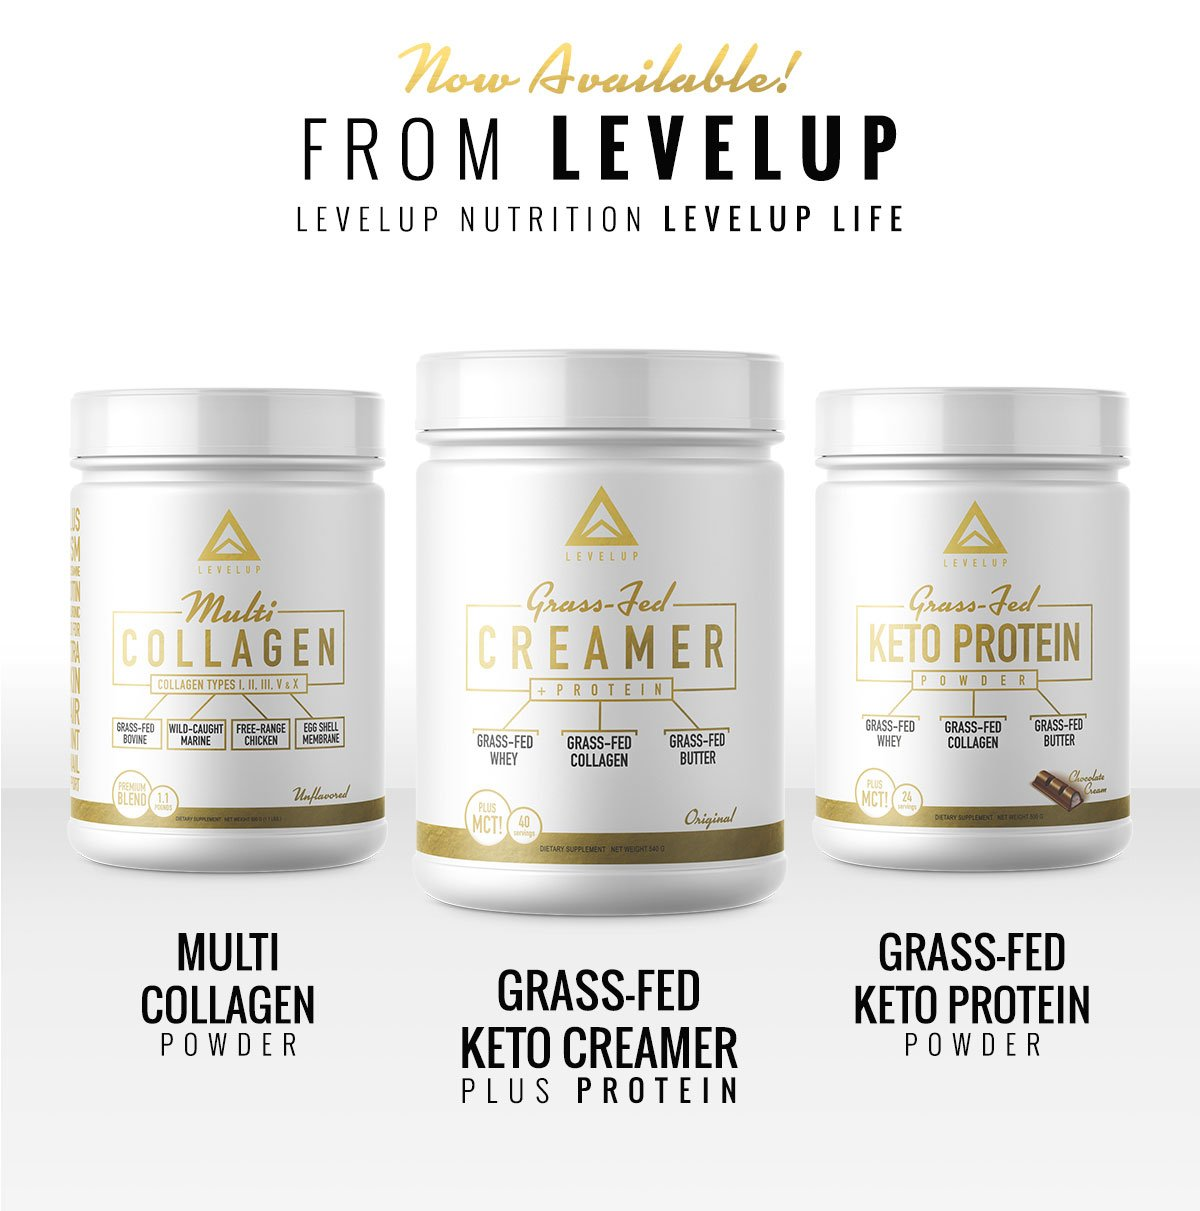 Clean MCT Capsules - Pure C8 MCT Oil Softgels - Highly Ketogenic Medium Chain Triglycerides - Instantly Converts into Ketones - Supports Ketosis - Cognitive Function - 1000mg Each by LevelUp (Image #7)